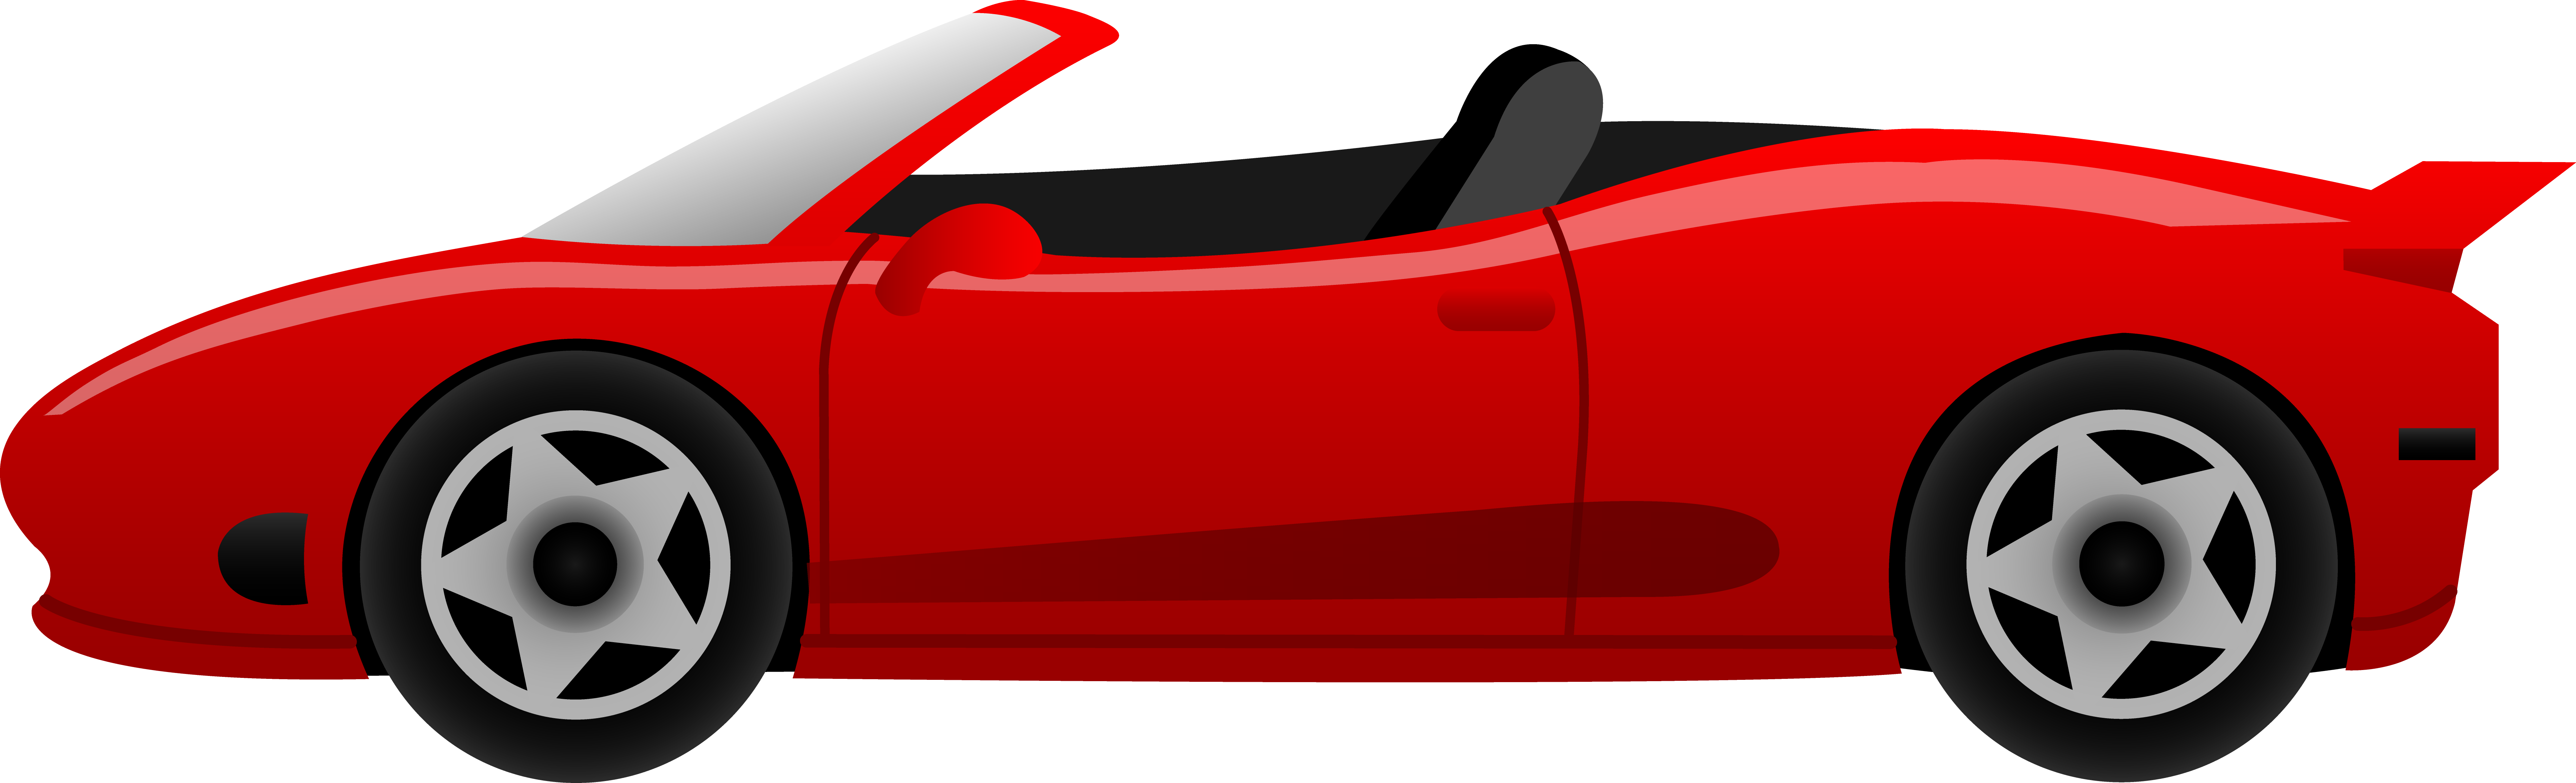 Free Sports Cars Clipart, Download Free Clip Art, Free Clip.